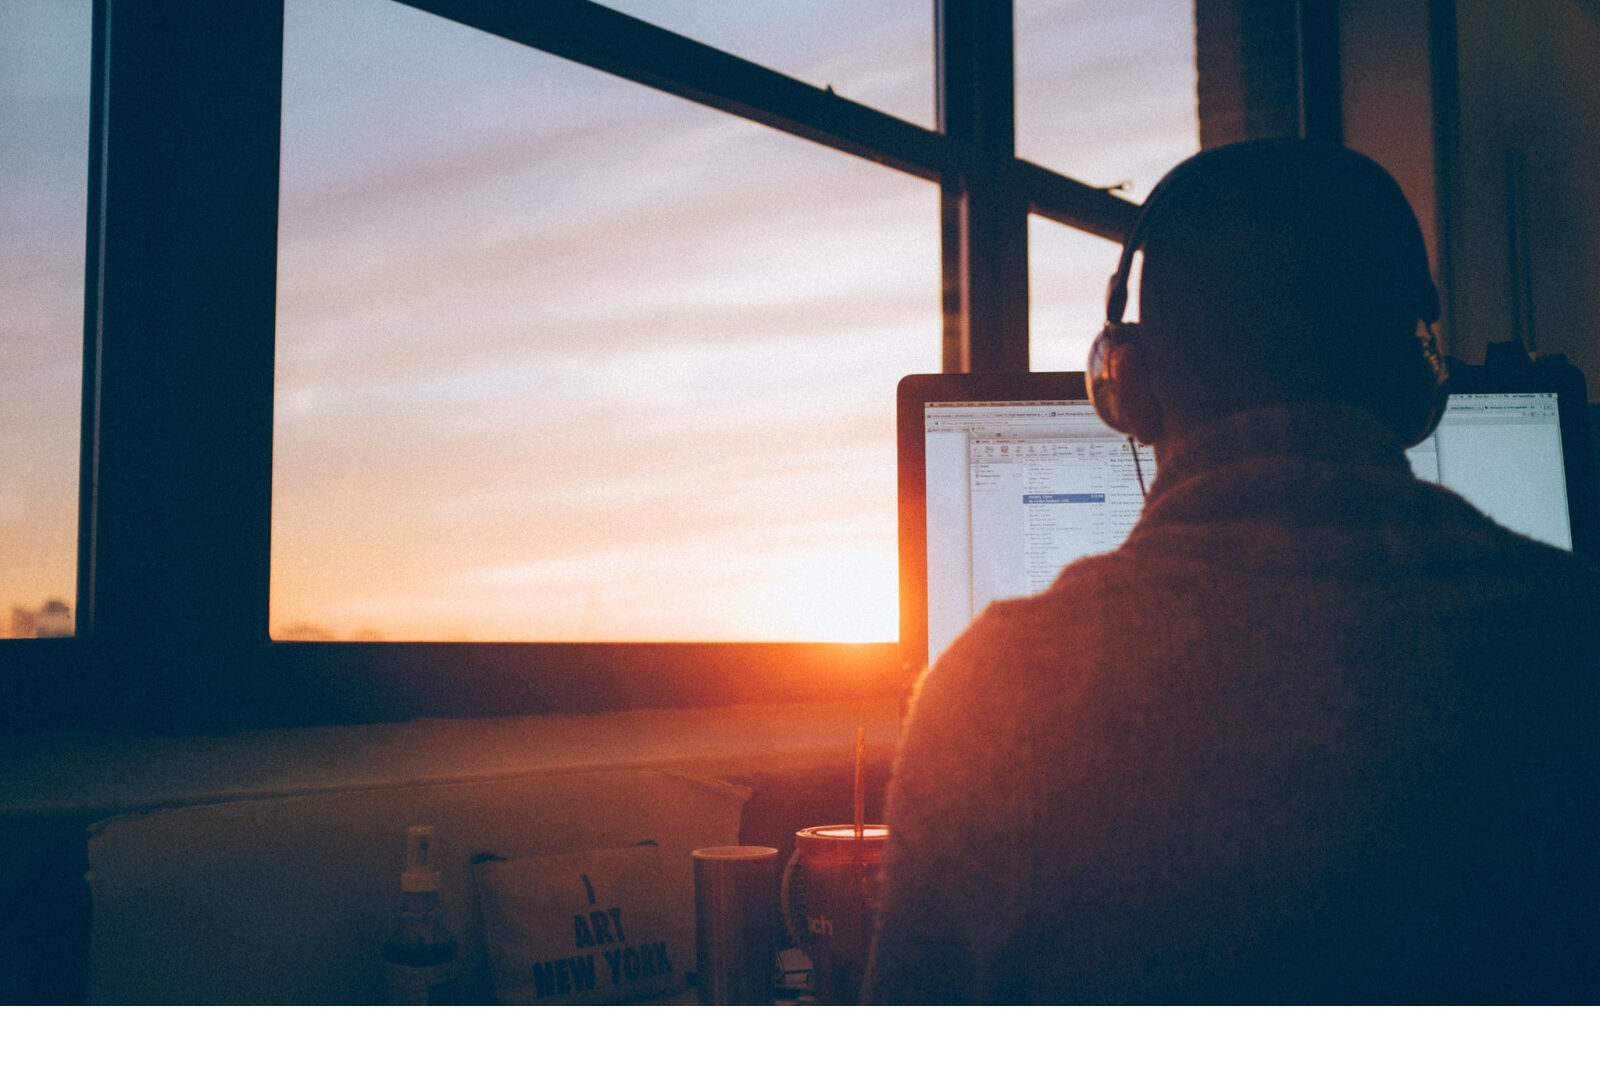 student sitting in front of computer screen in from of a window though which the sun is setting